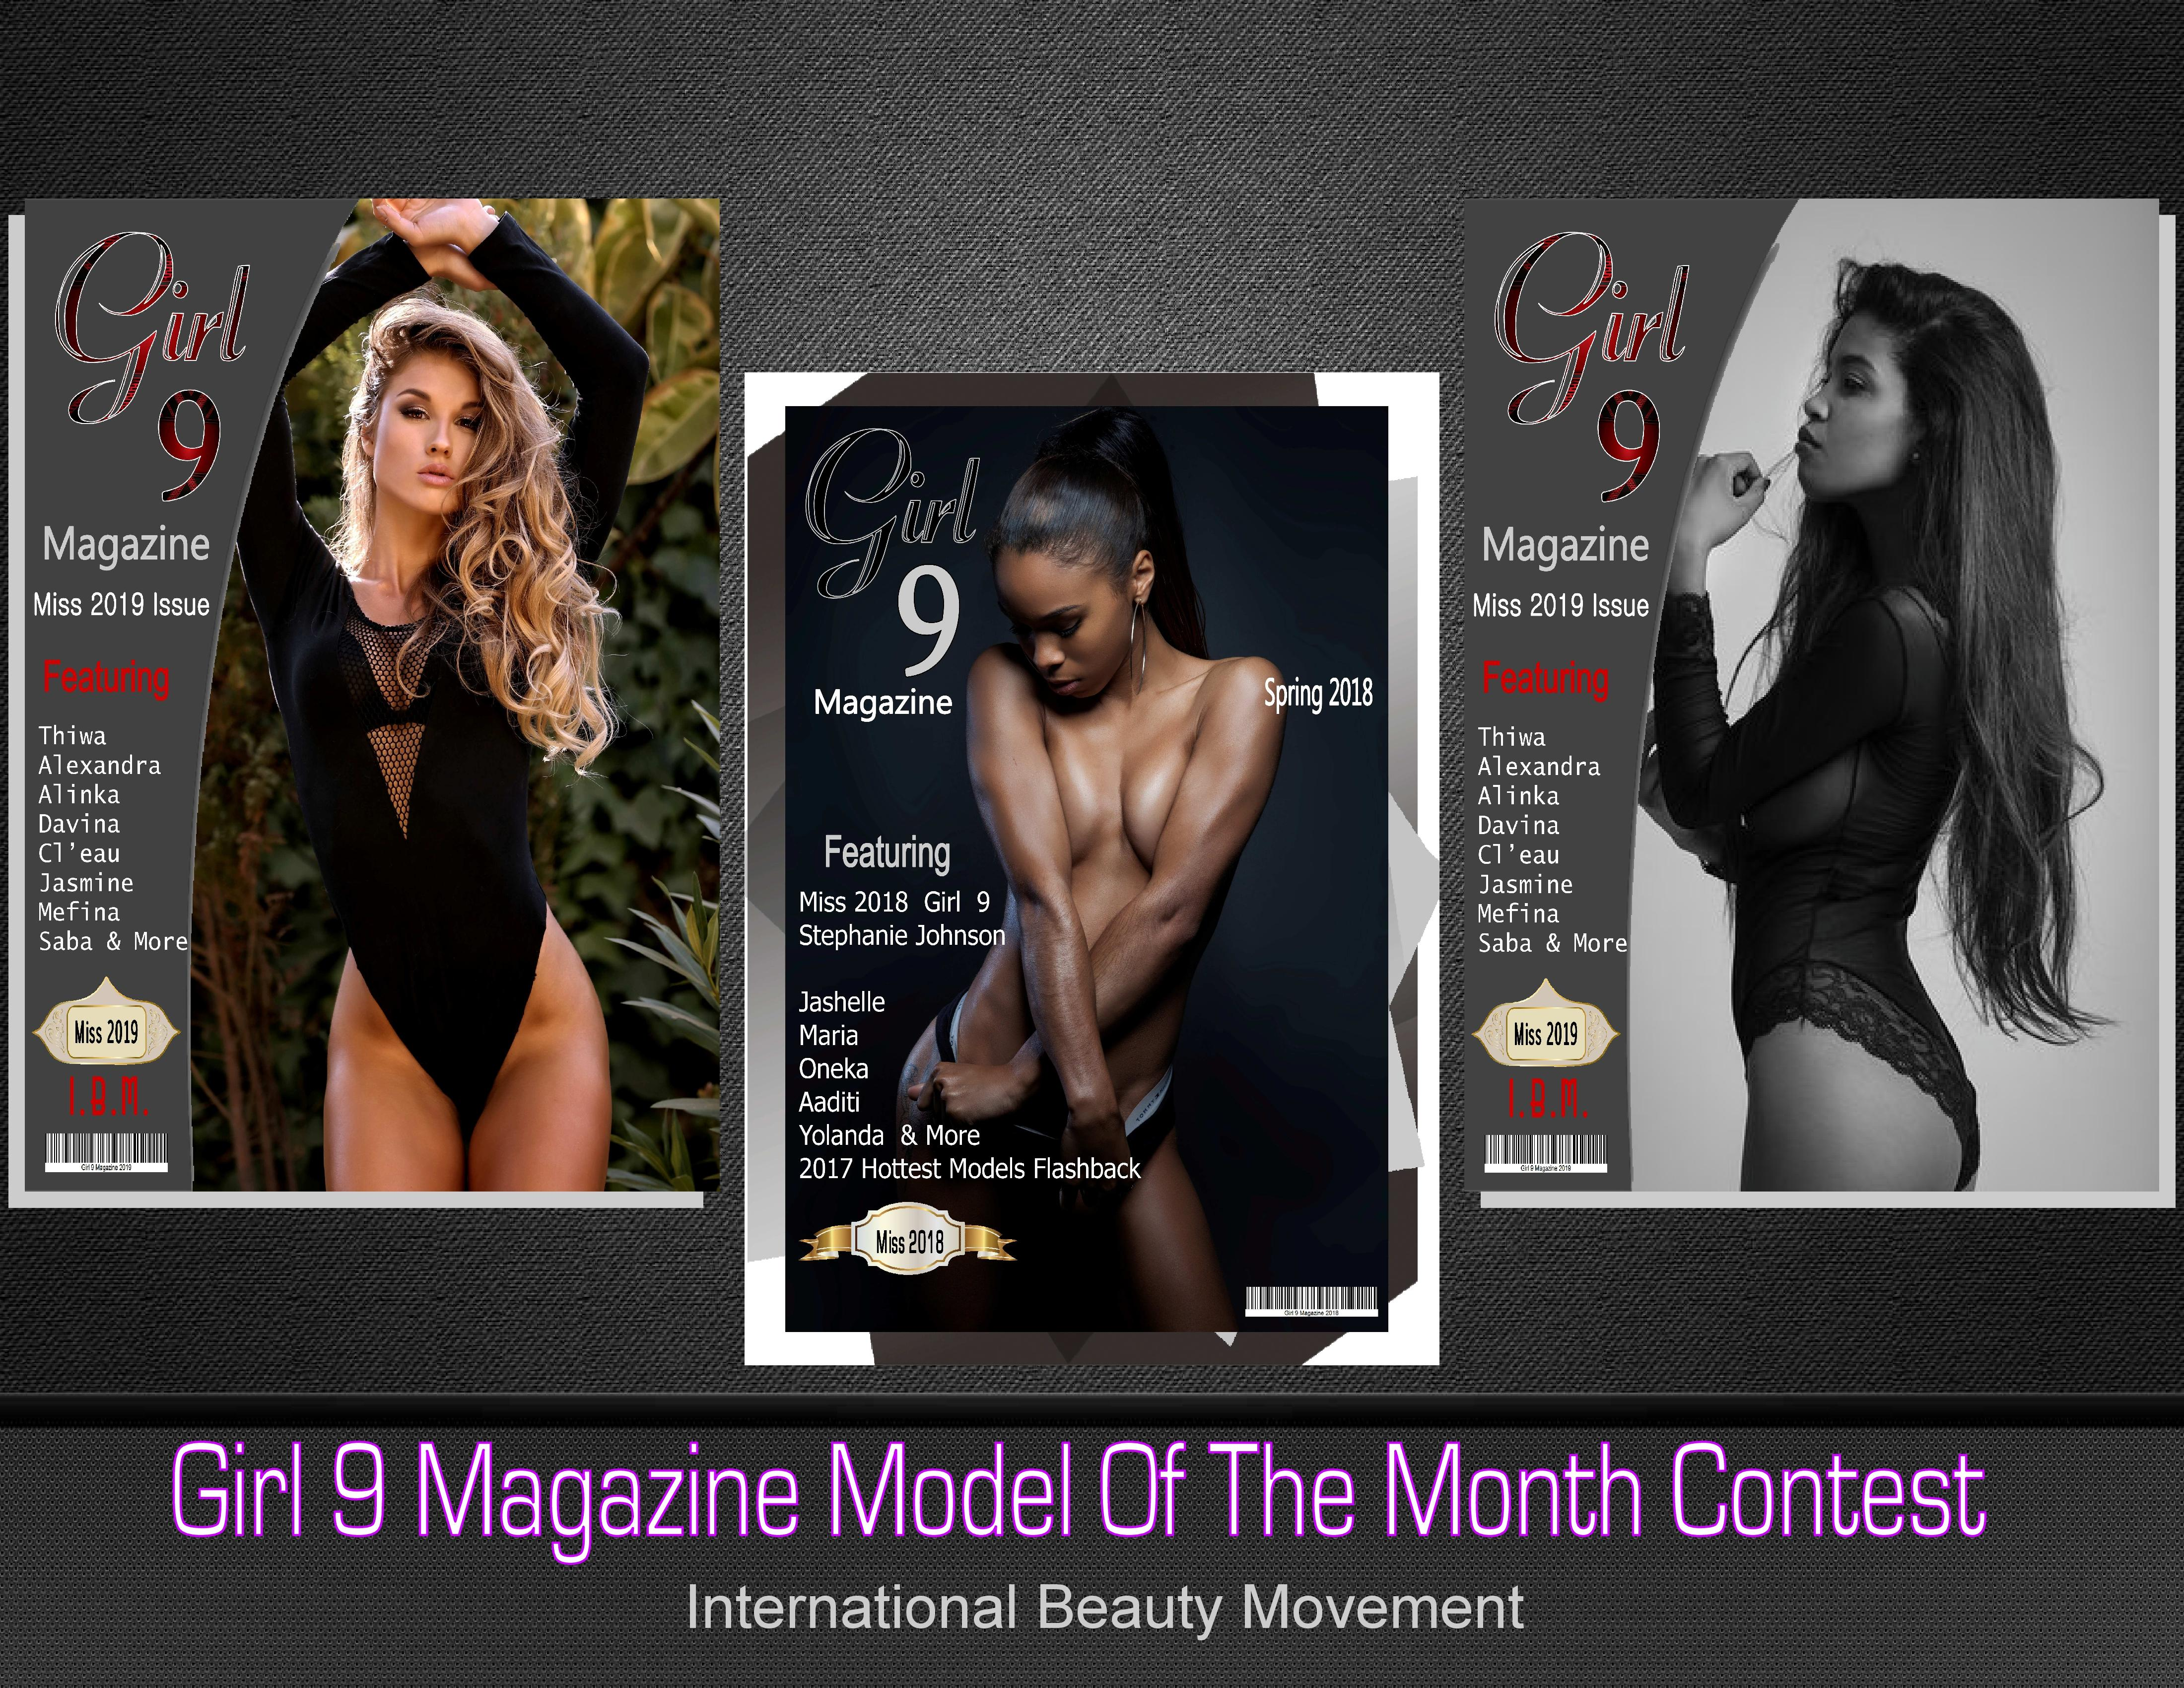 Girl 9 Magazine Free Lingerie Model of the Month Contest